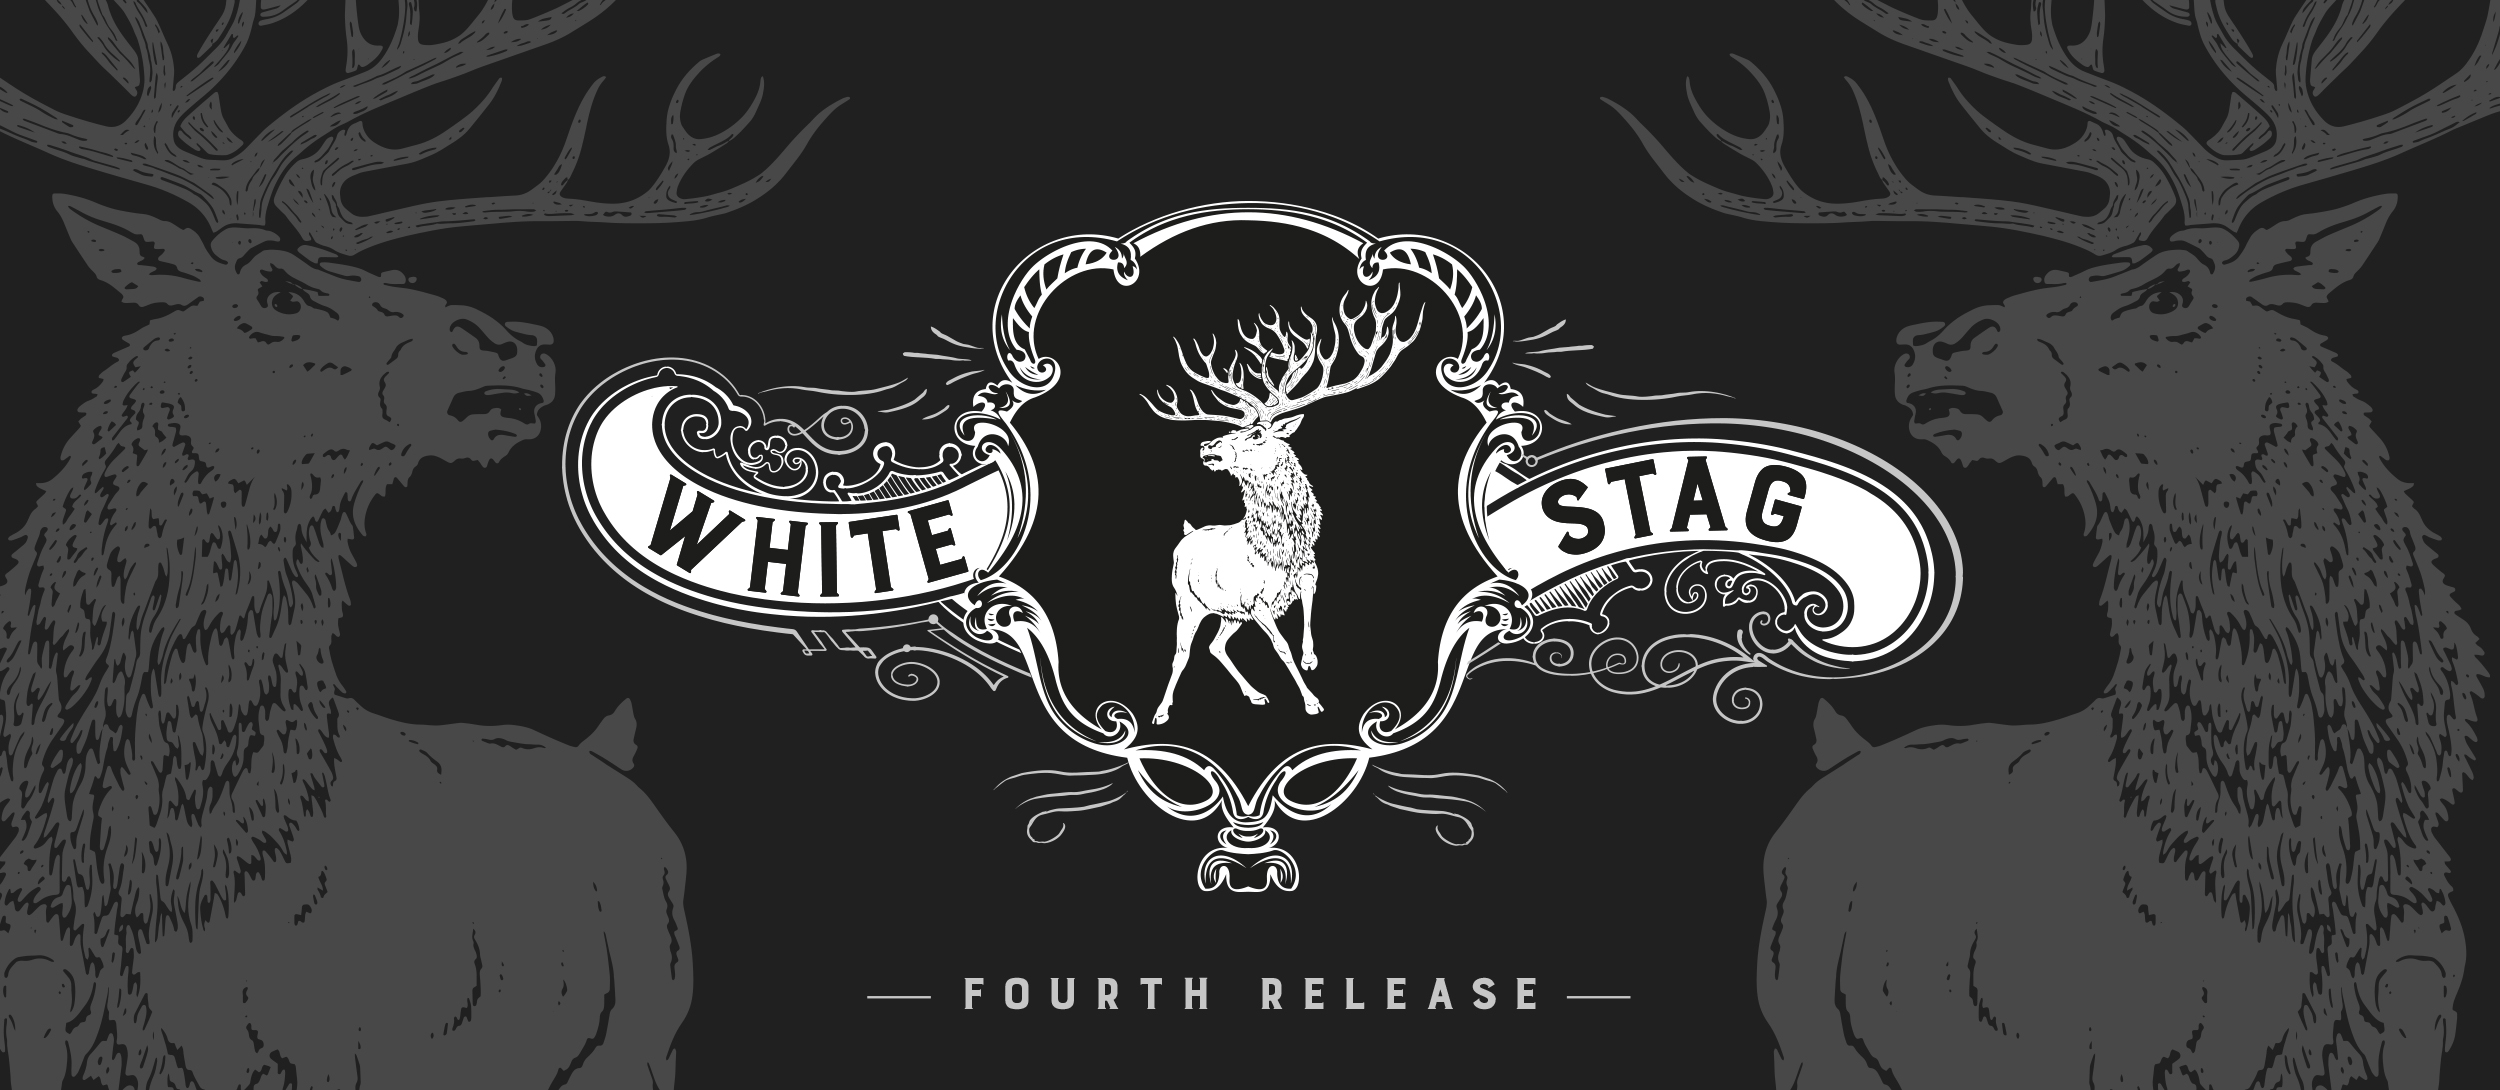 White Stag Fourth Release social logo